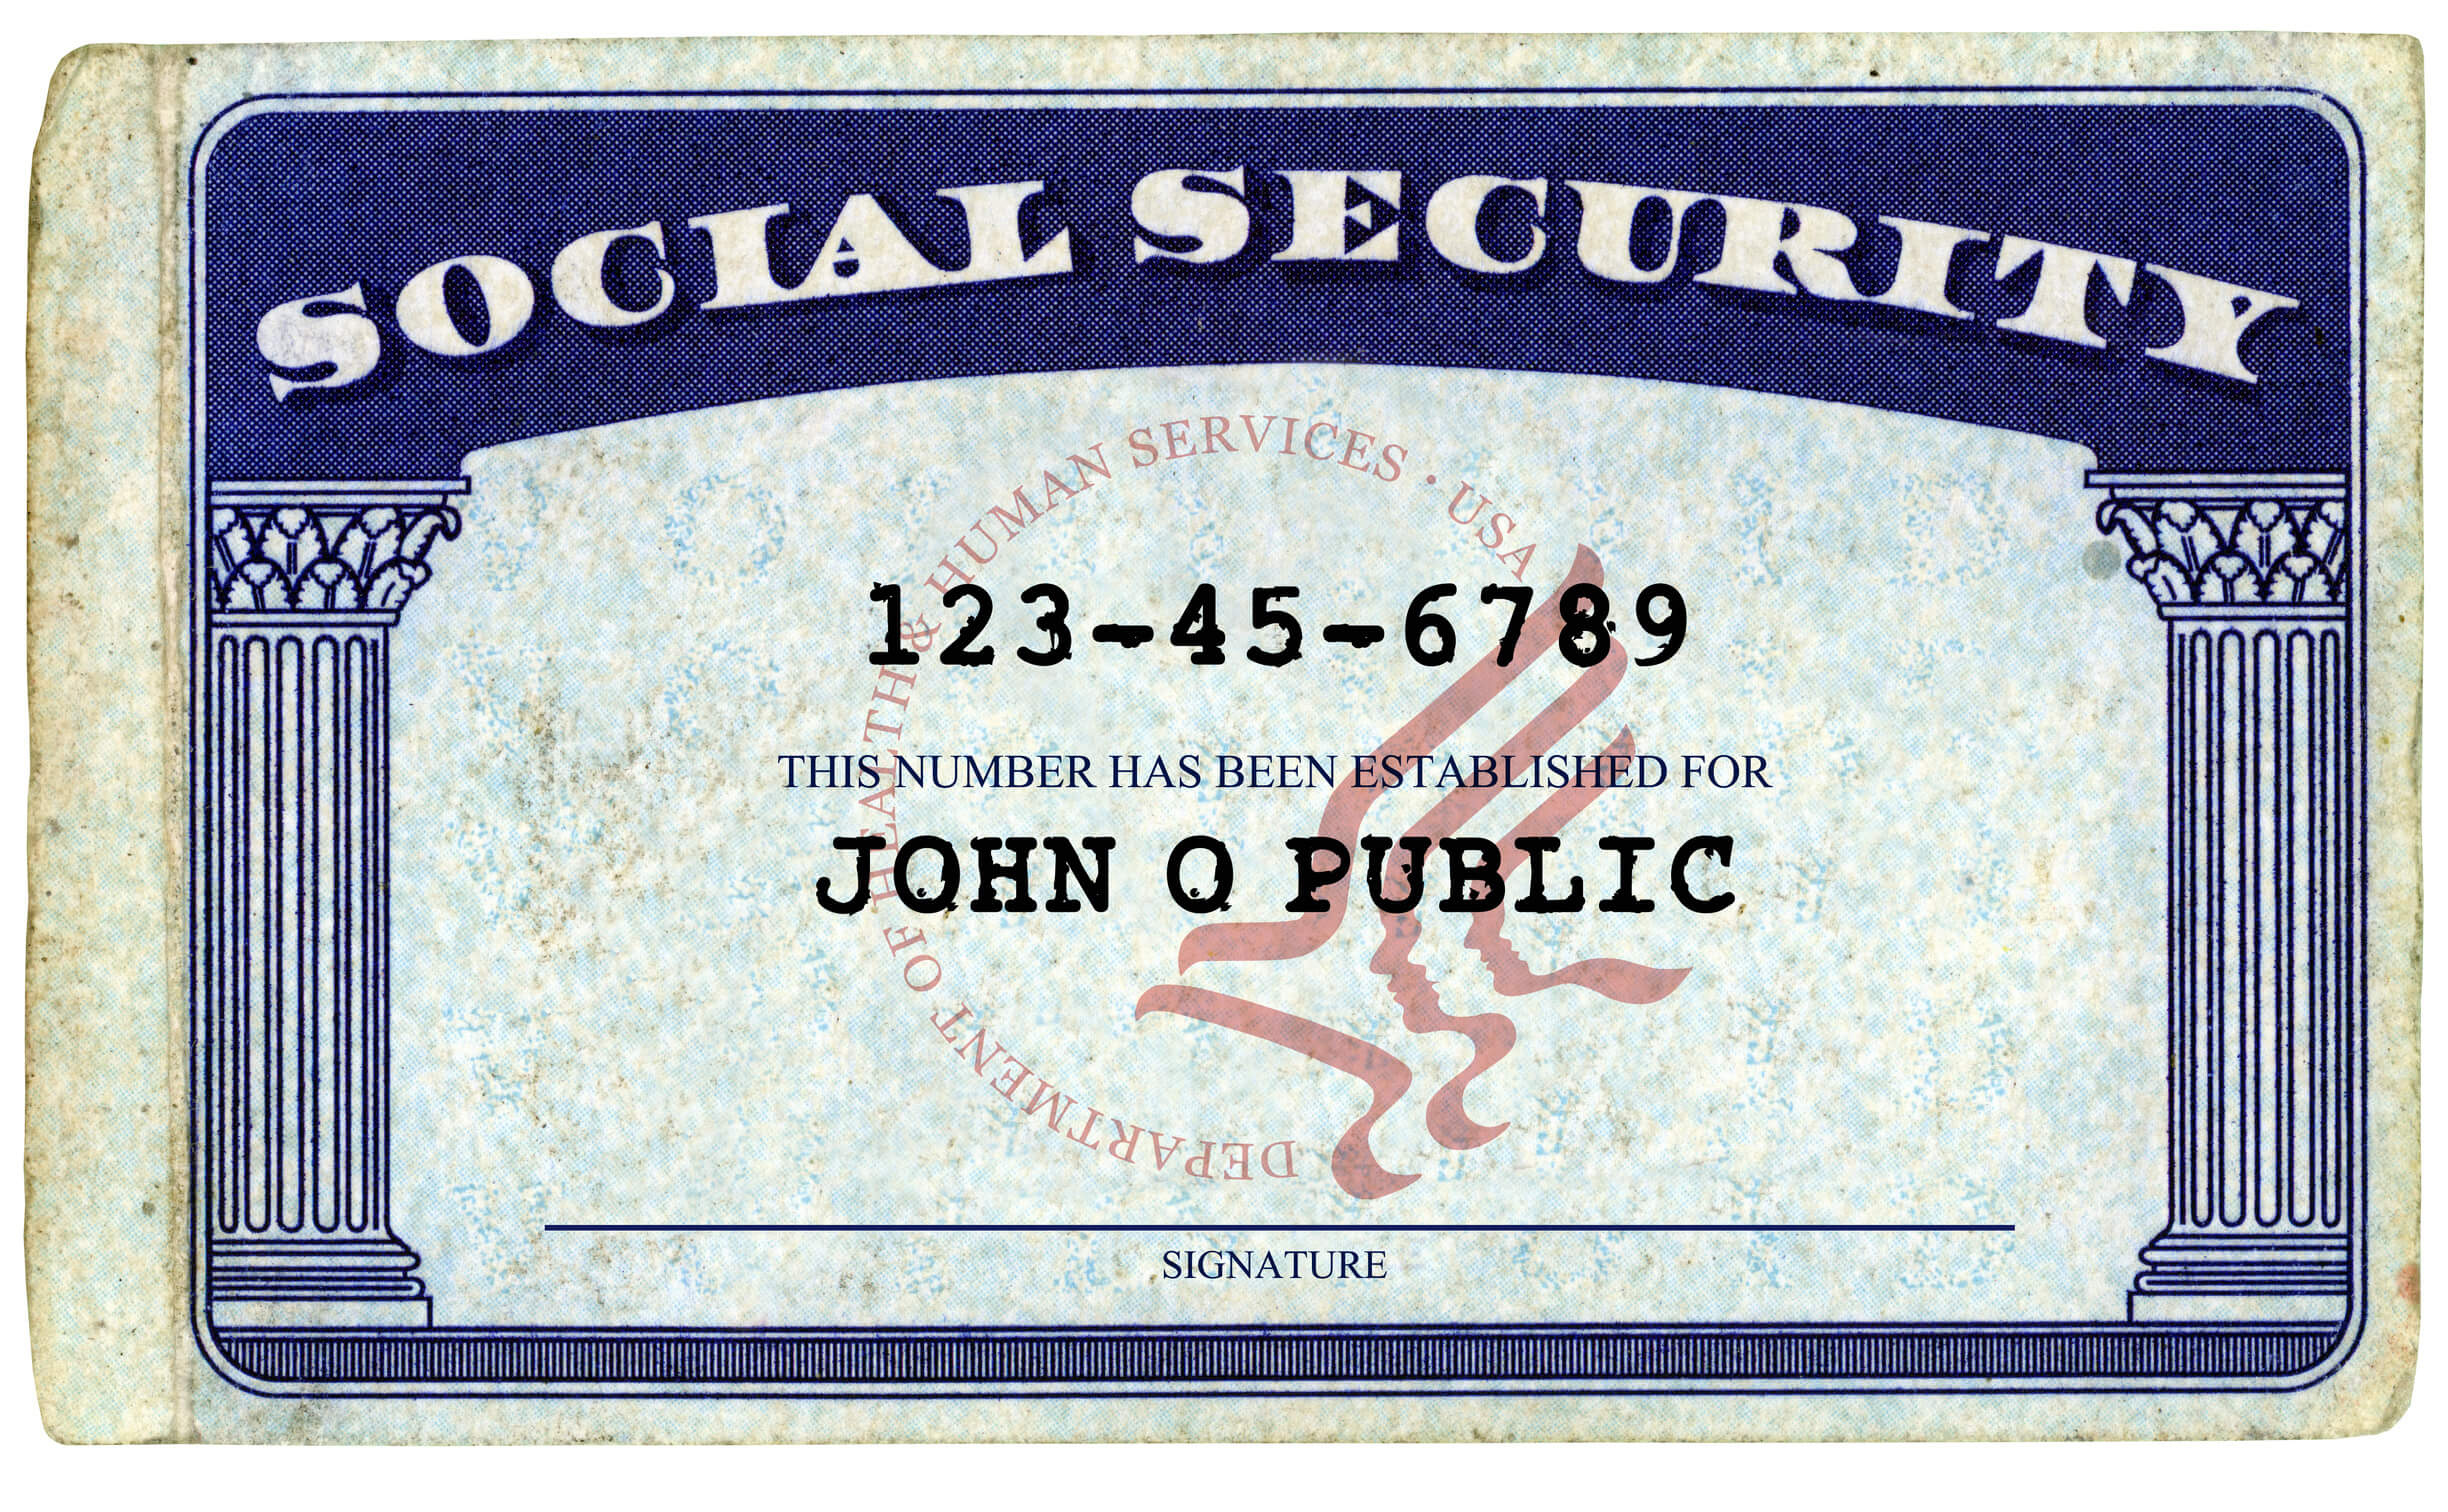 Don't Give Your Social Security Number At These Places regarding Social Security Card Template Photoshop